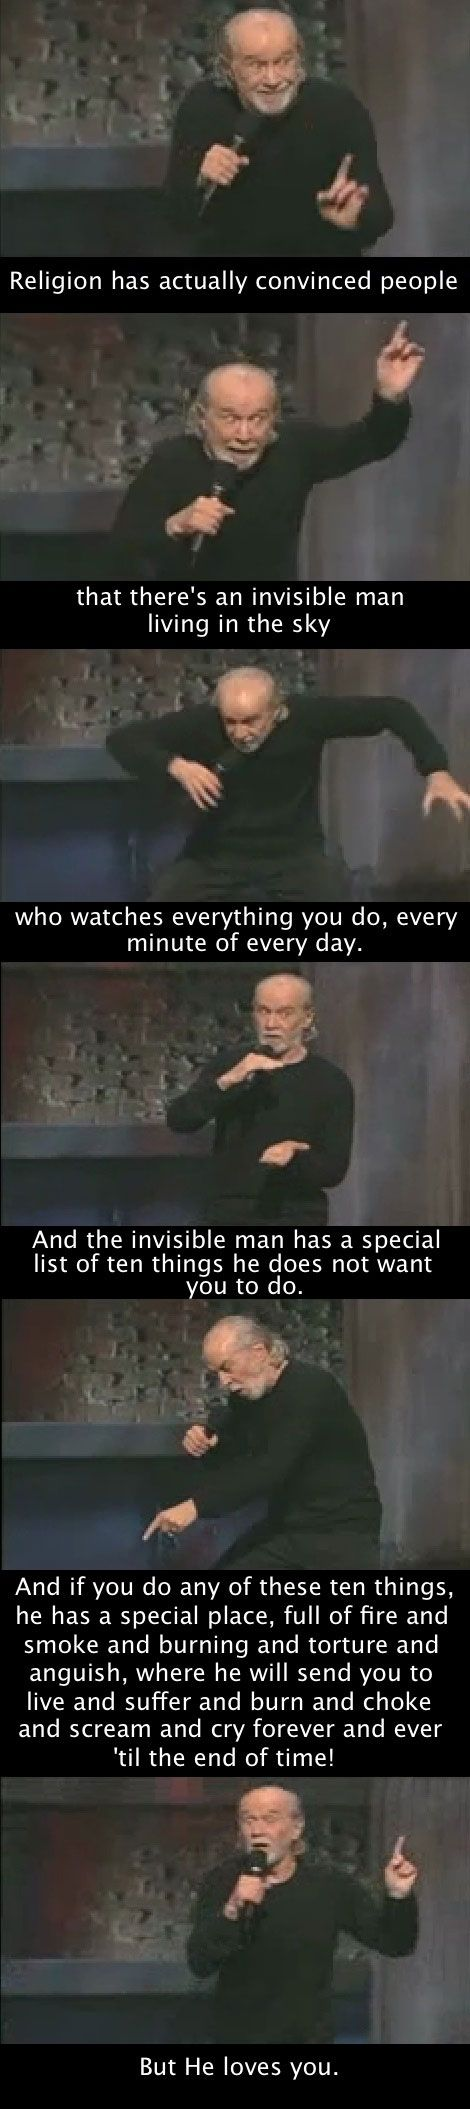 Carlin on idolatry. http://www.pinterest.com/pin/540924605216346424/ Comparative religion is a figment! It follows from the foregoing premises that there is no such thing as comparative religion as taught in the seminaries. One might as well talk of comparative God, or comparative Bible or Heaven. There is comparative superstition and fanaticism and comparative idolatry and systems of philosophy, but it is a solecism to talk about comparative religion.